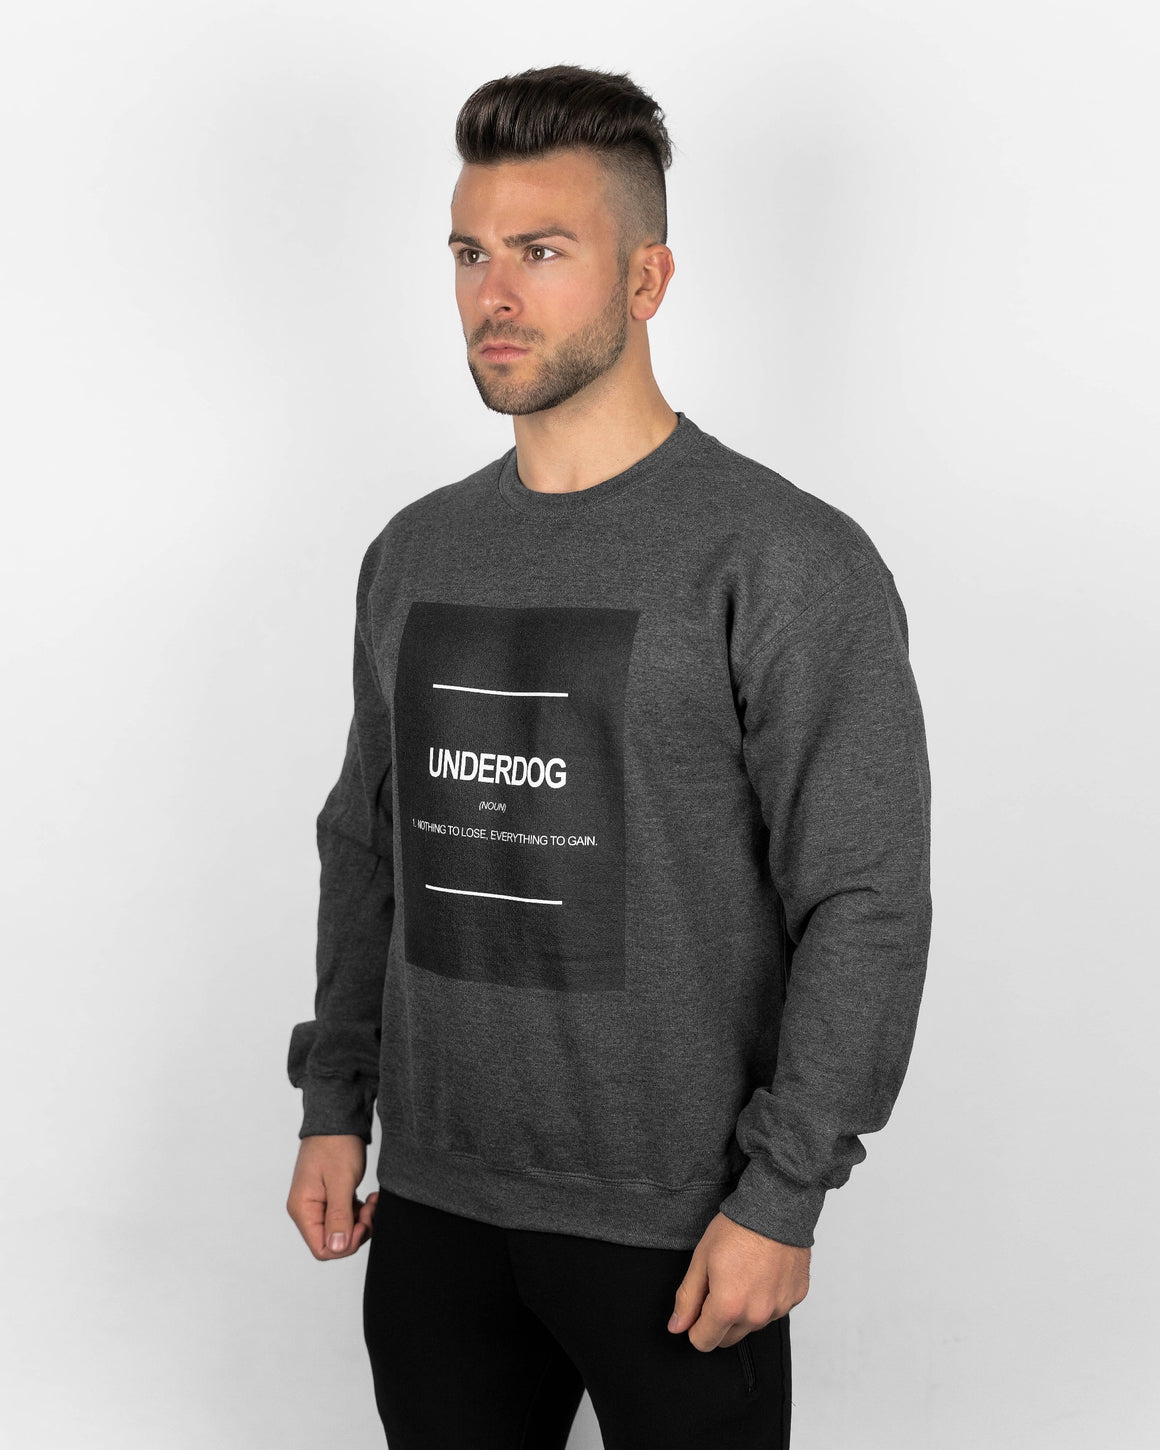 UNDERDOG Definition Sweatshirt - Dark Heather